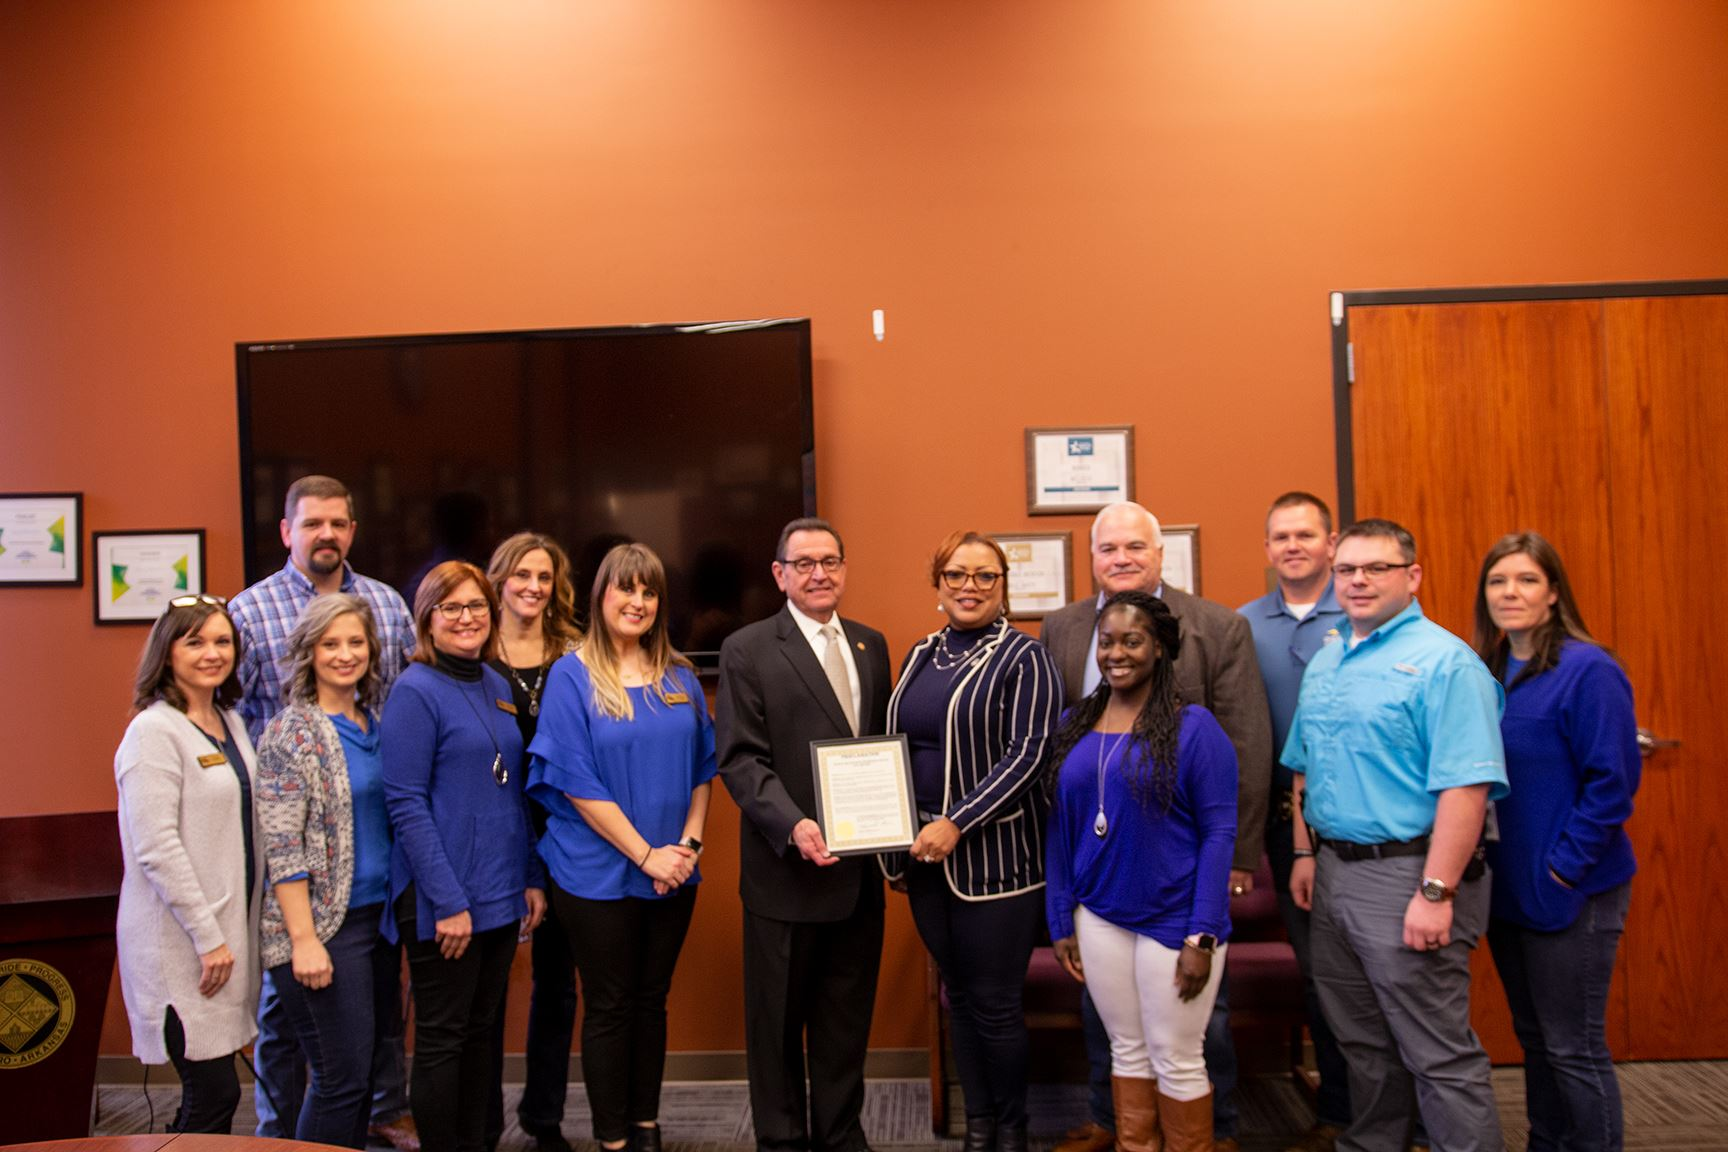 mayor with member of various organizations and proclamation for human trafficking awareness month